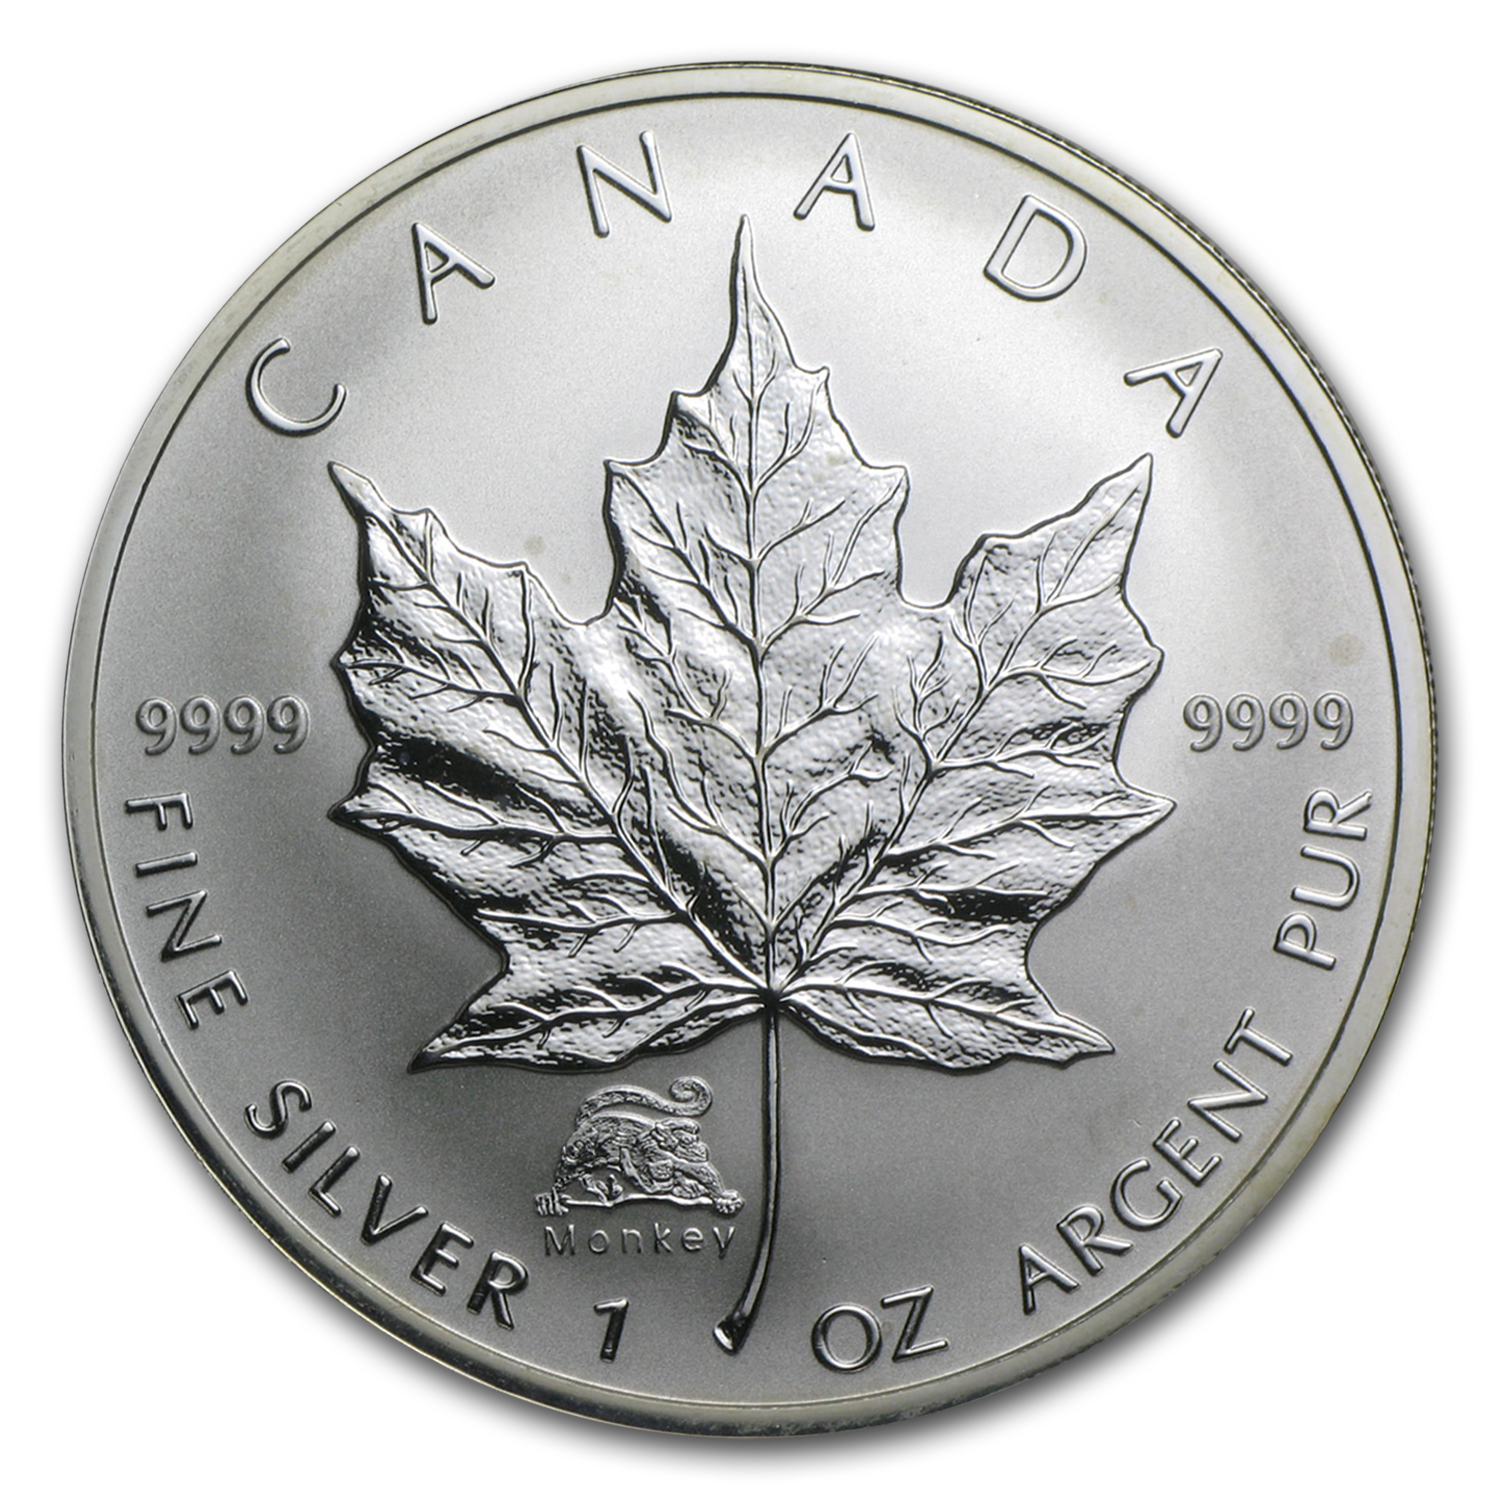 2004 Canada 1 oz Silver Maple Leaf Lunar Monkey Privy